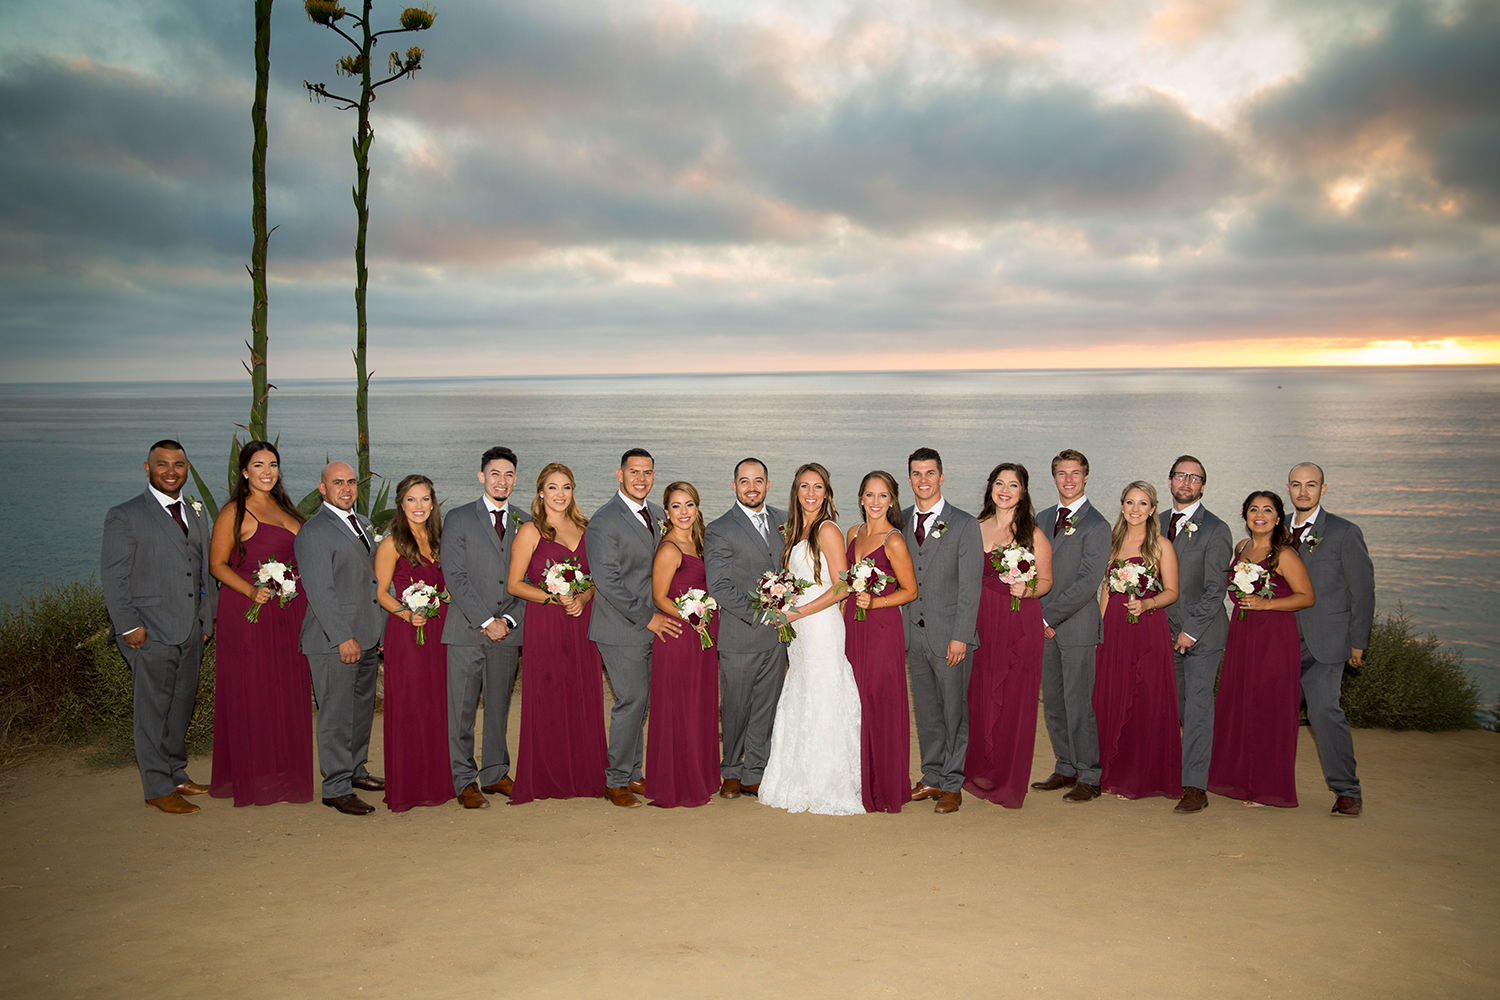 full bridal party photo with red dresses